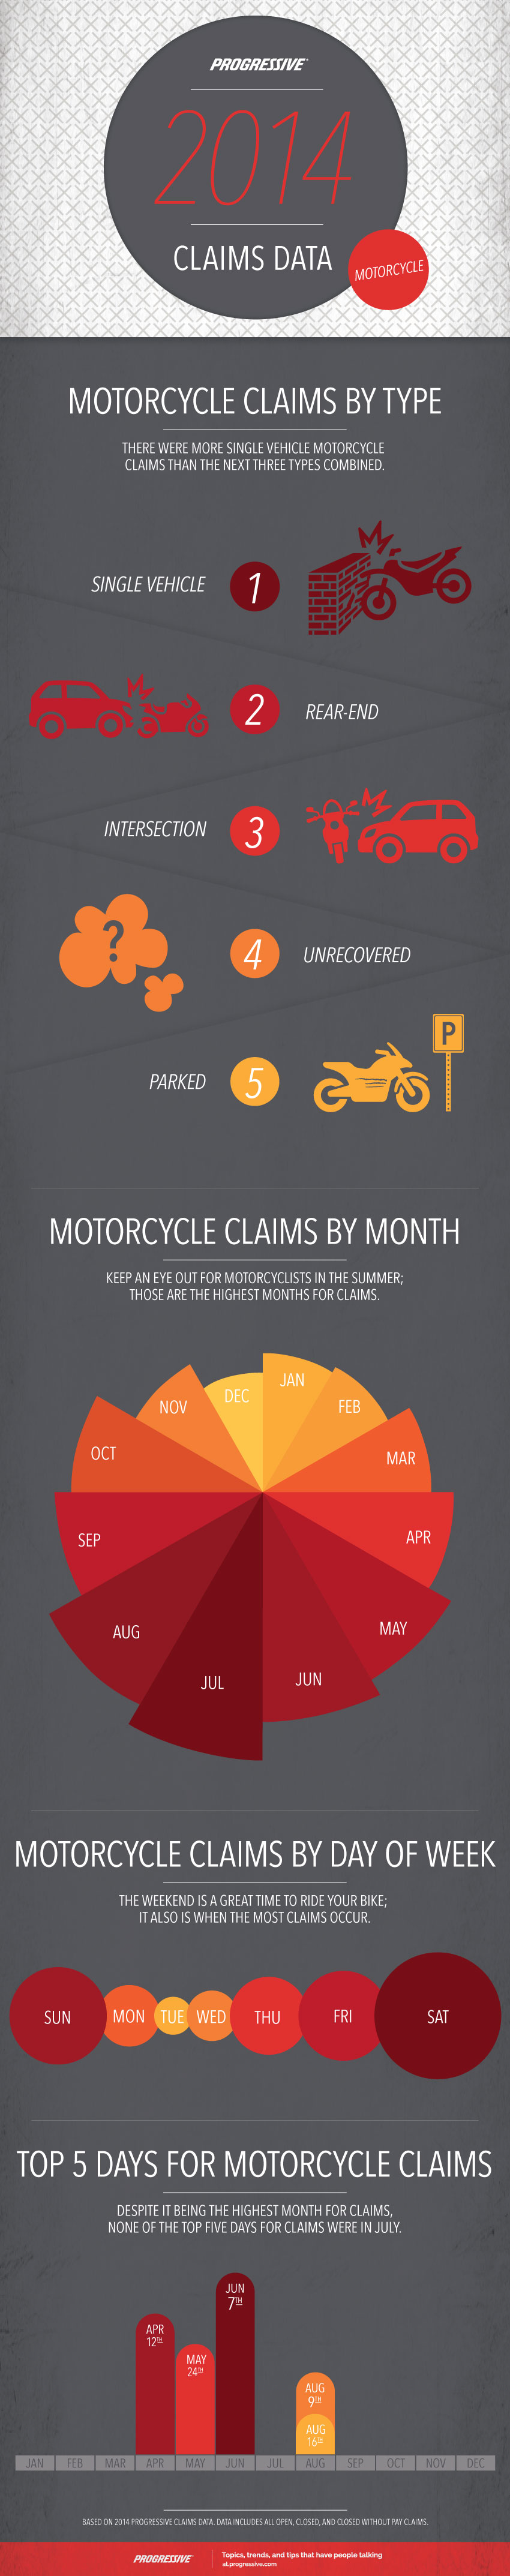 Progressive Insurance, Motorcycle Insurance Claims, Motorcycle Accidents, Motorcycle Safety, Motorcycle Accident Infographic